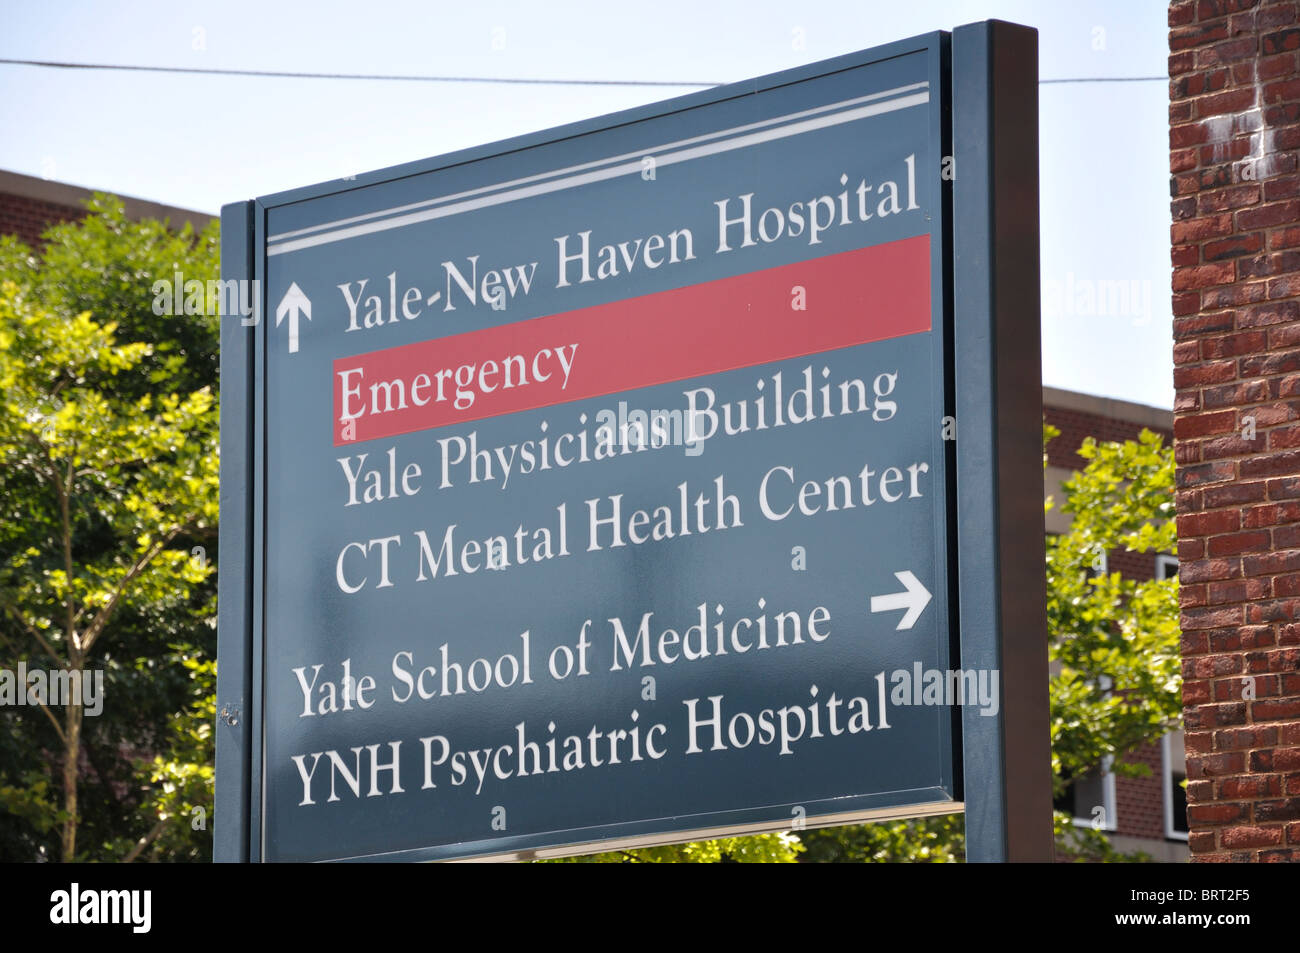 Yale New Haven Hospital Stock Photos & Yale New Haven